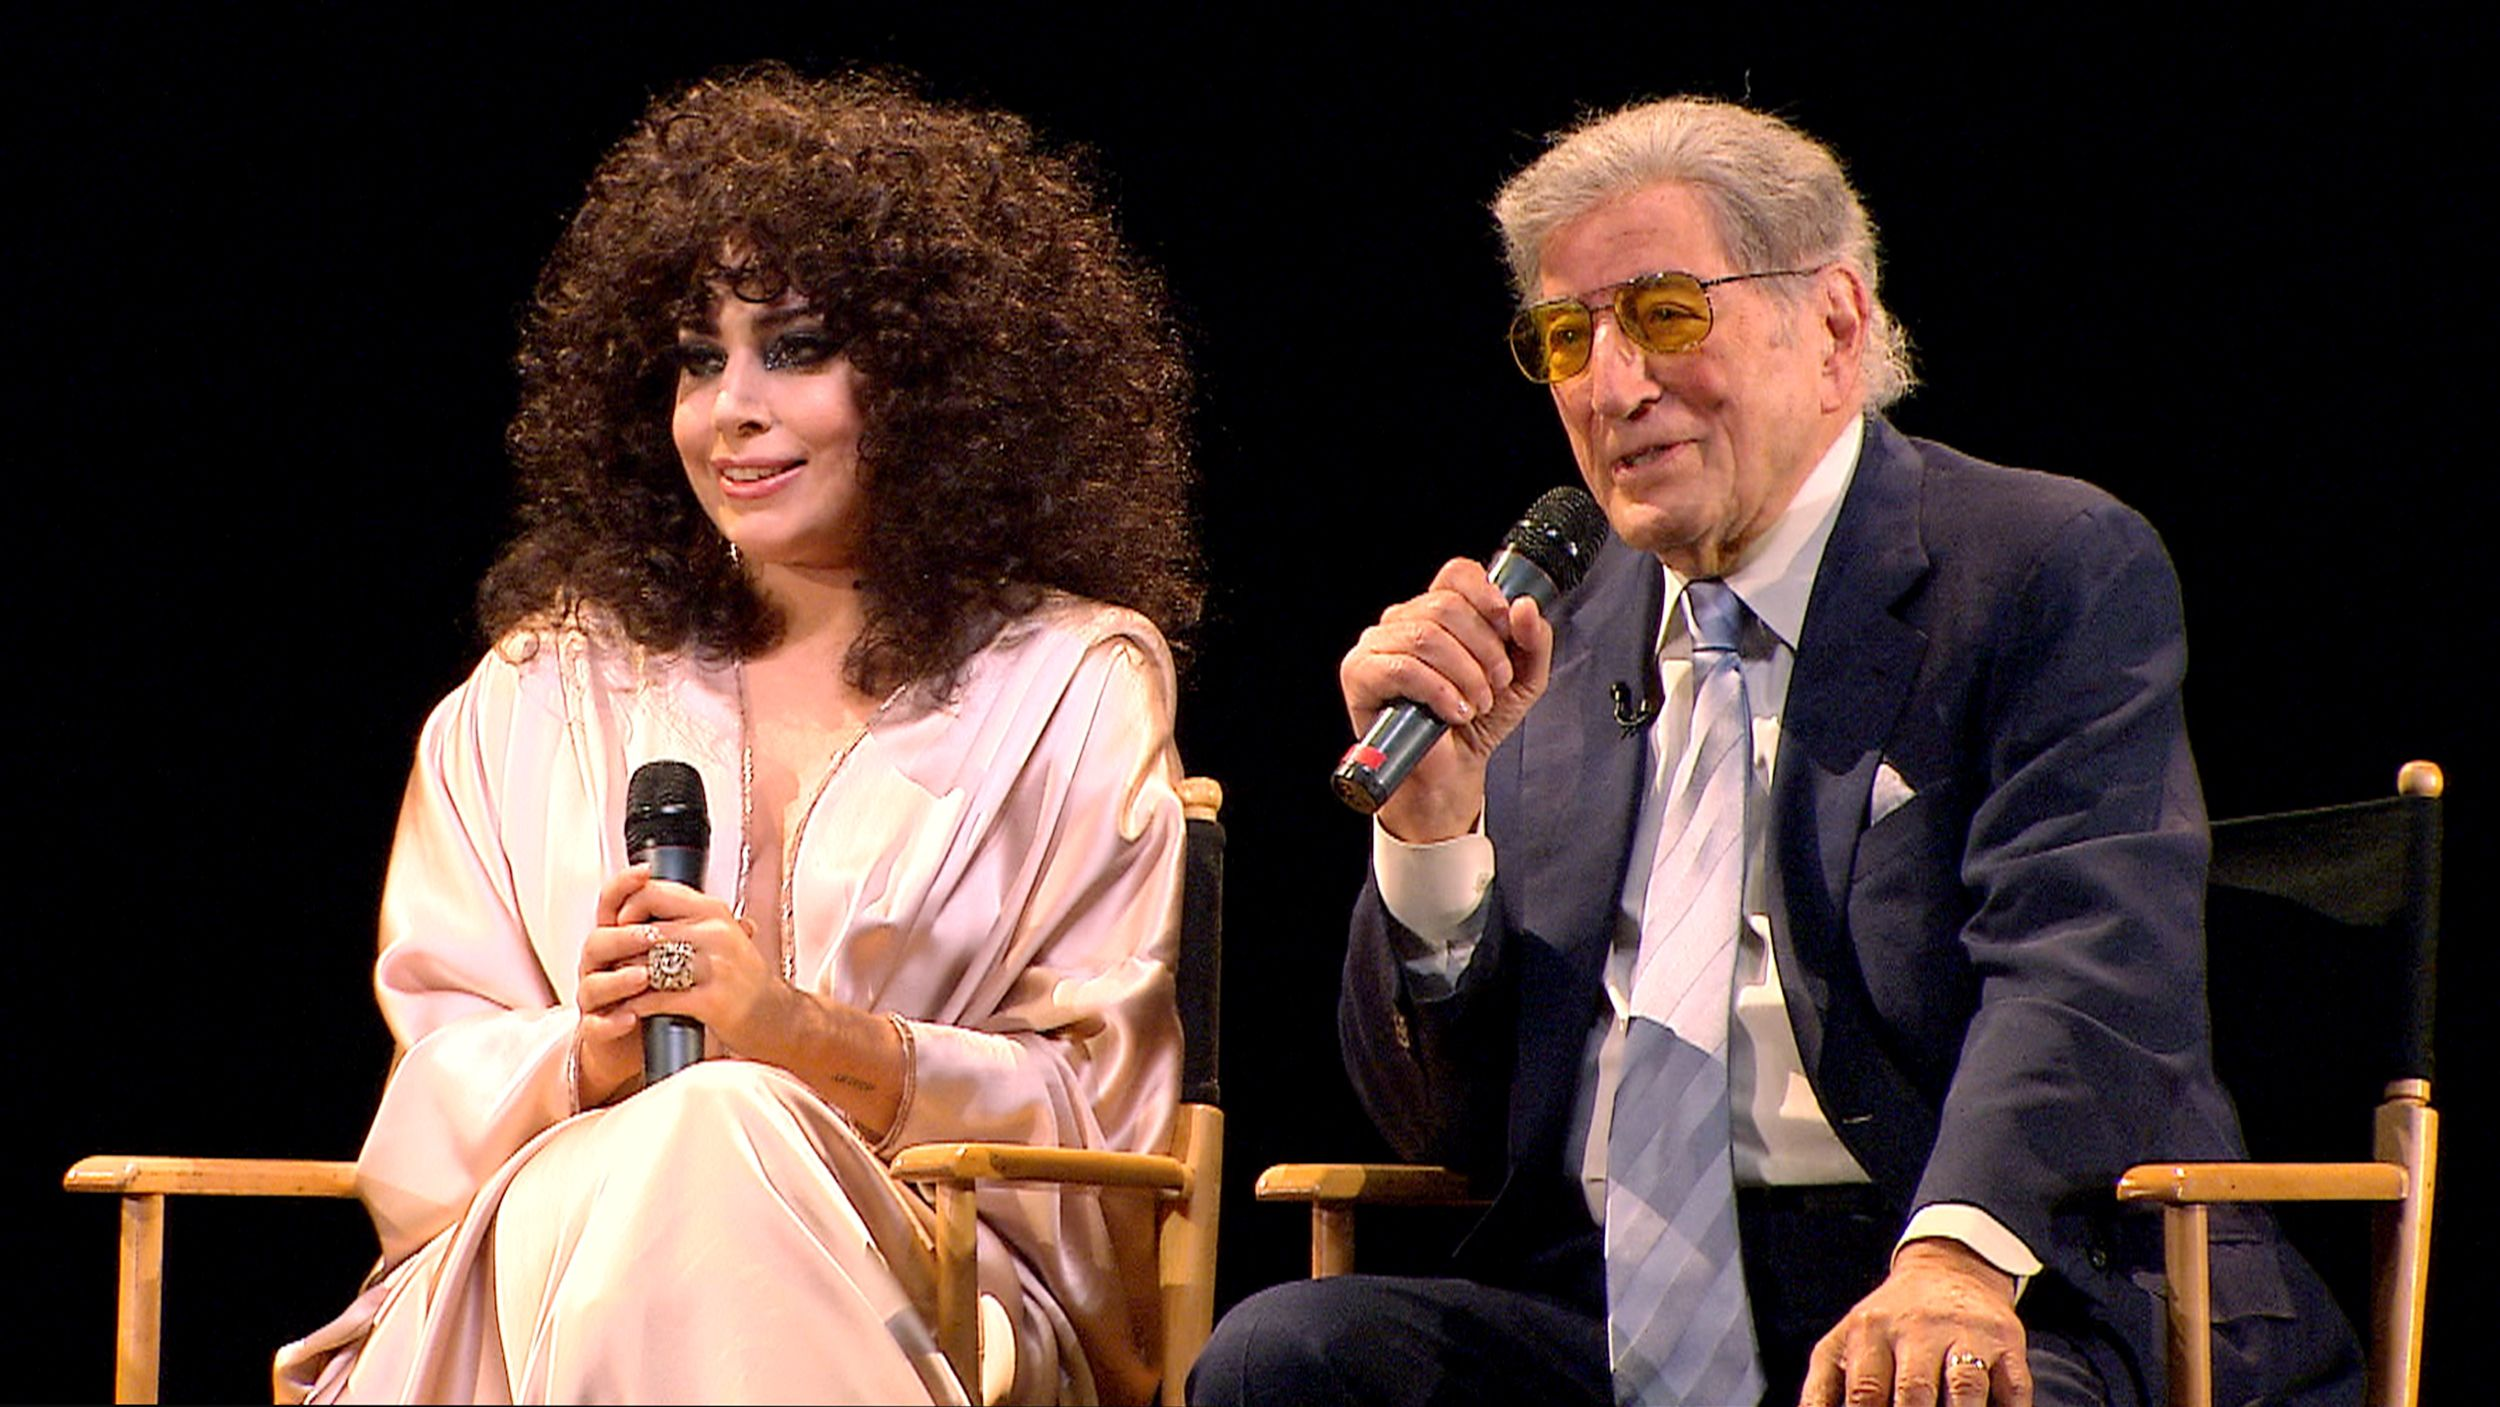 Tony Bennett: Lady Gaga's 'going to be bigger than Elvis Presley'